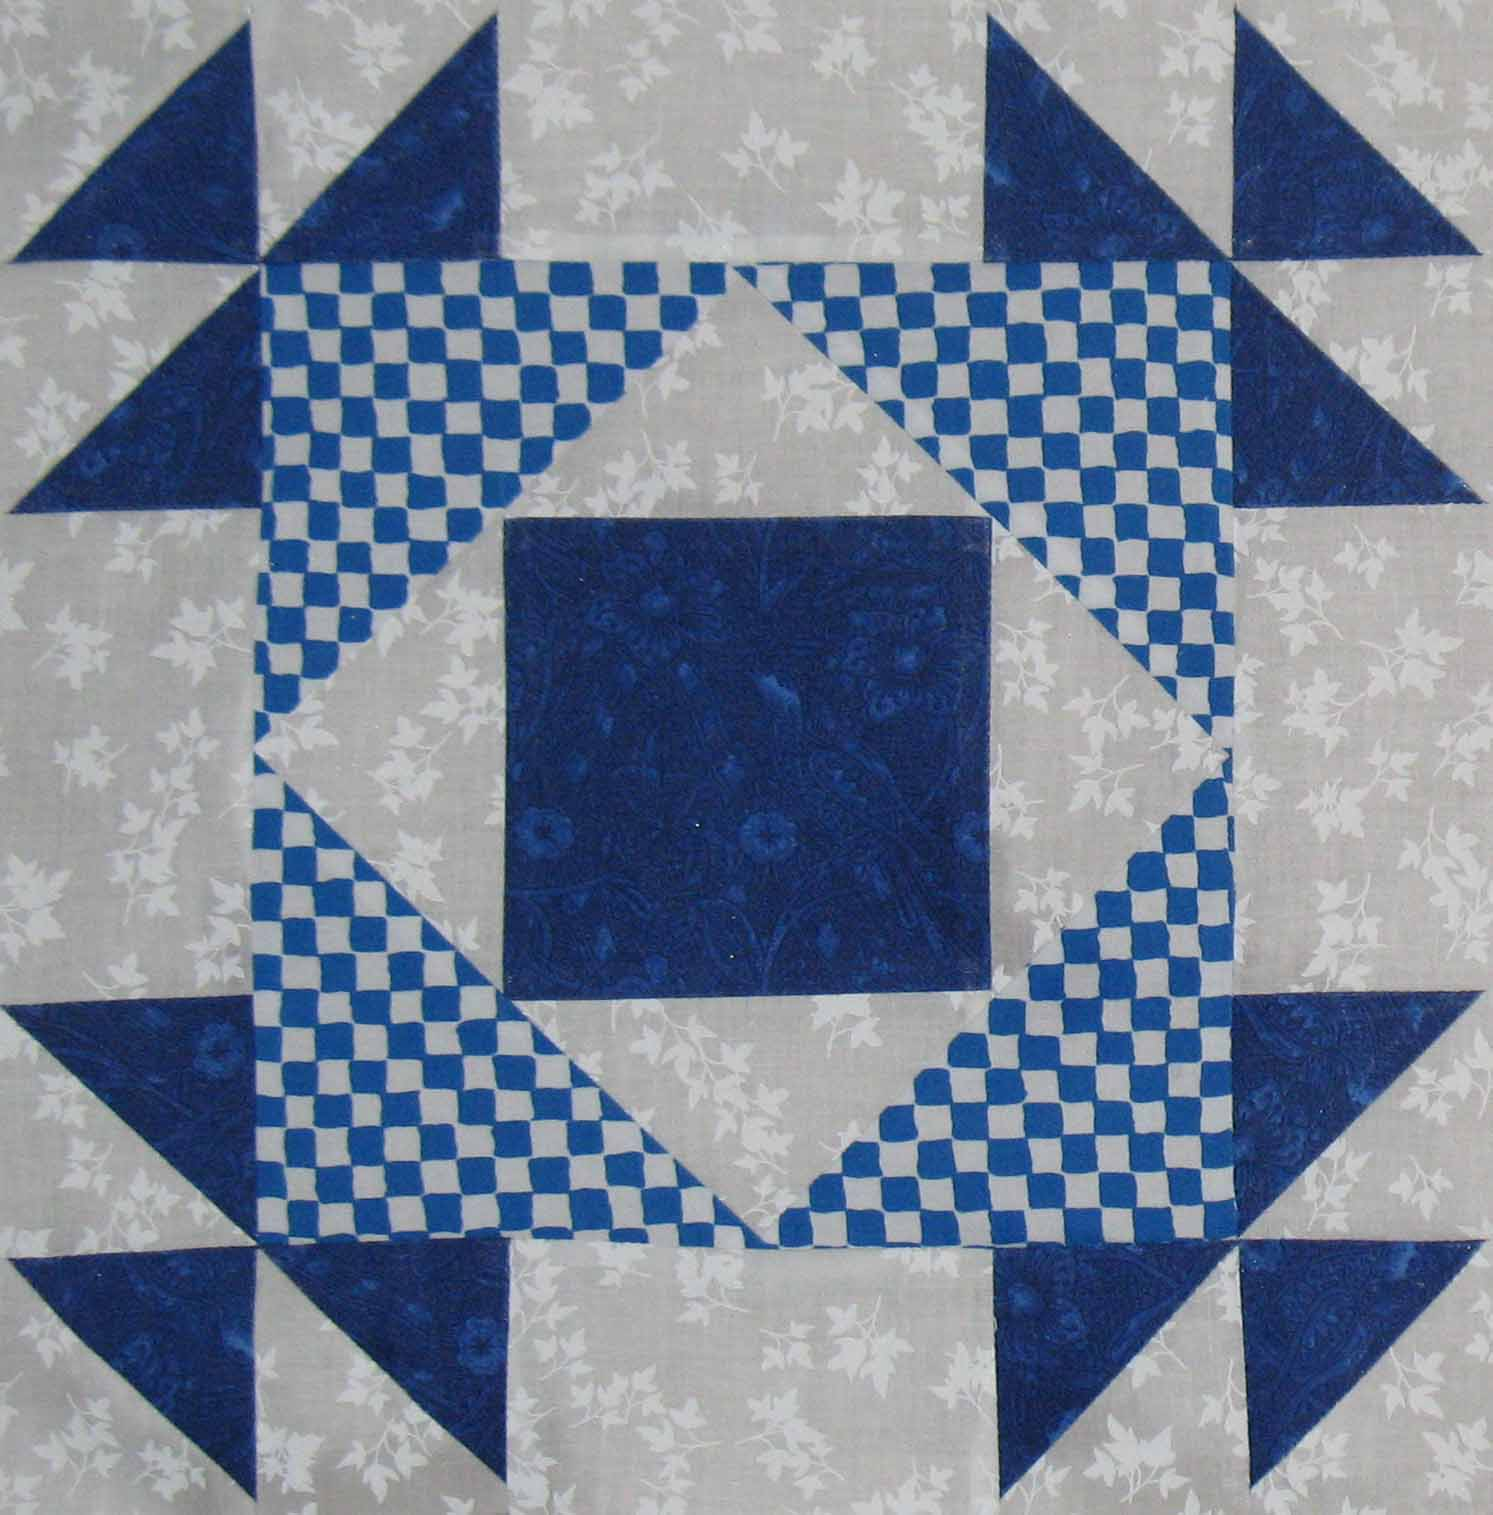 Quilt Patterns Using 12 Inch Squares : 12 5 inch quilt block patterns - Video Search Engine at Search.com